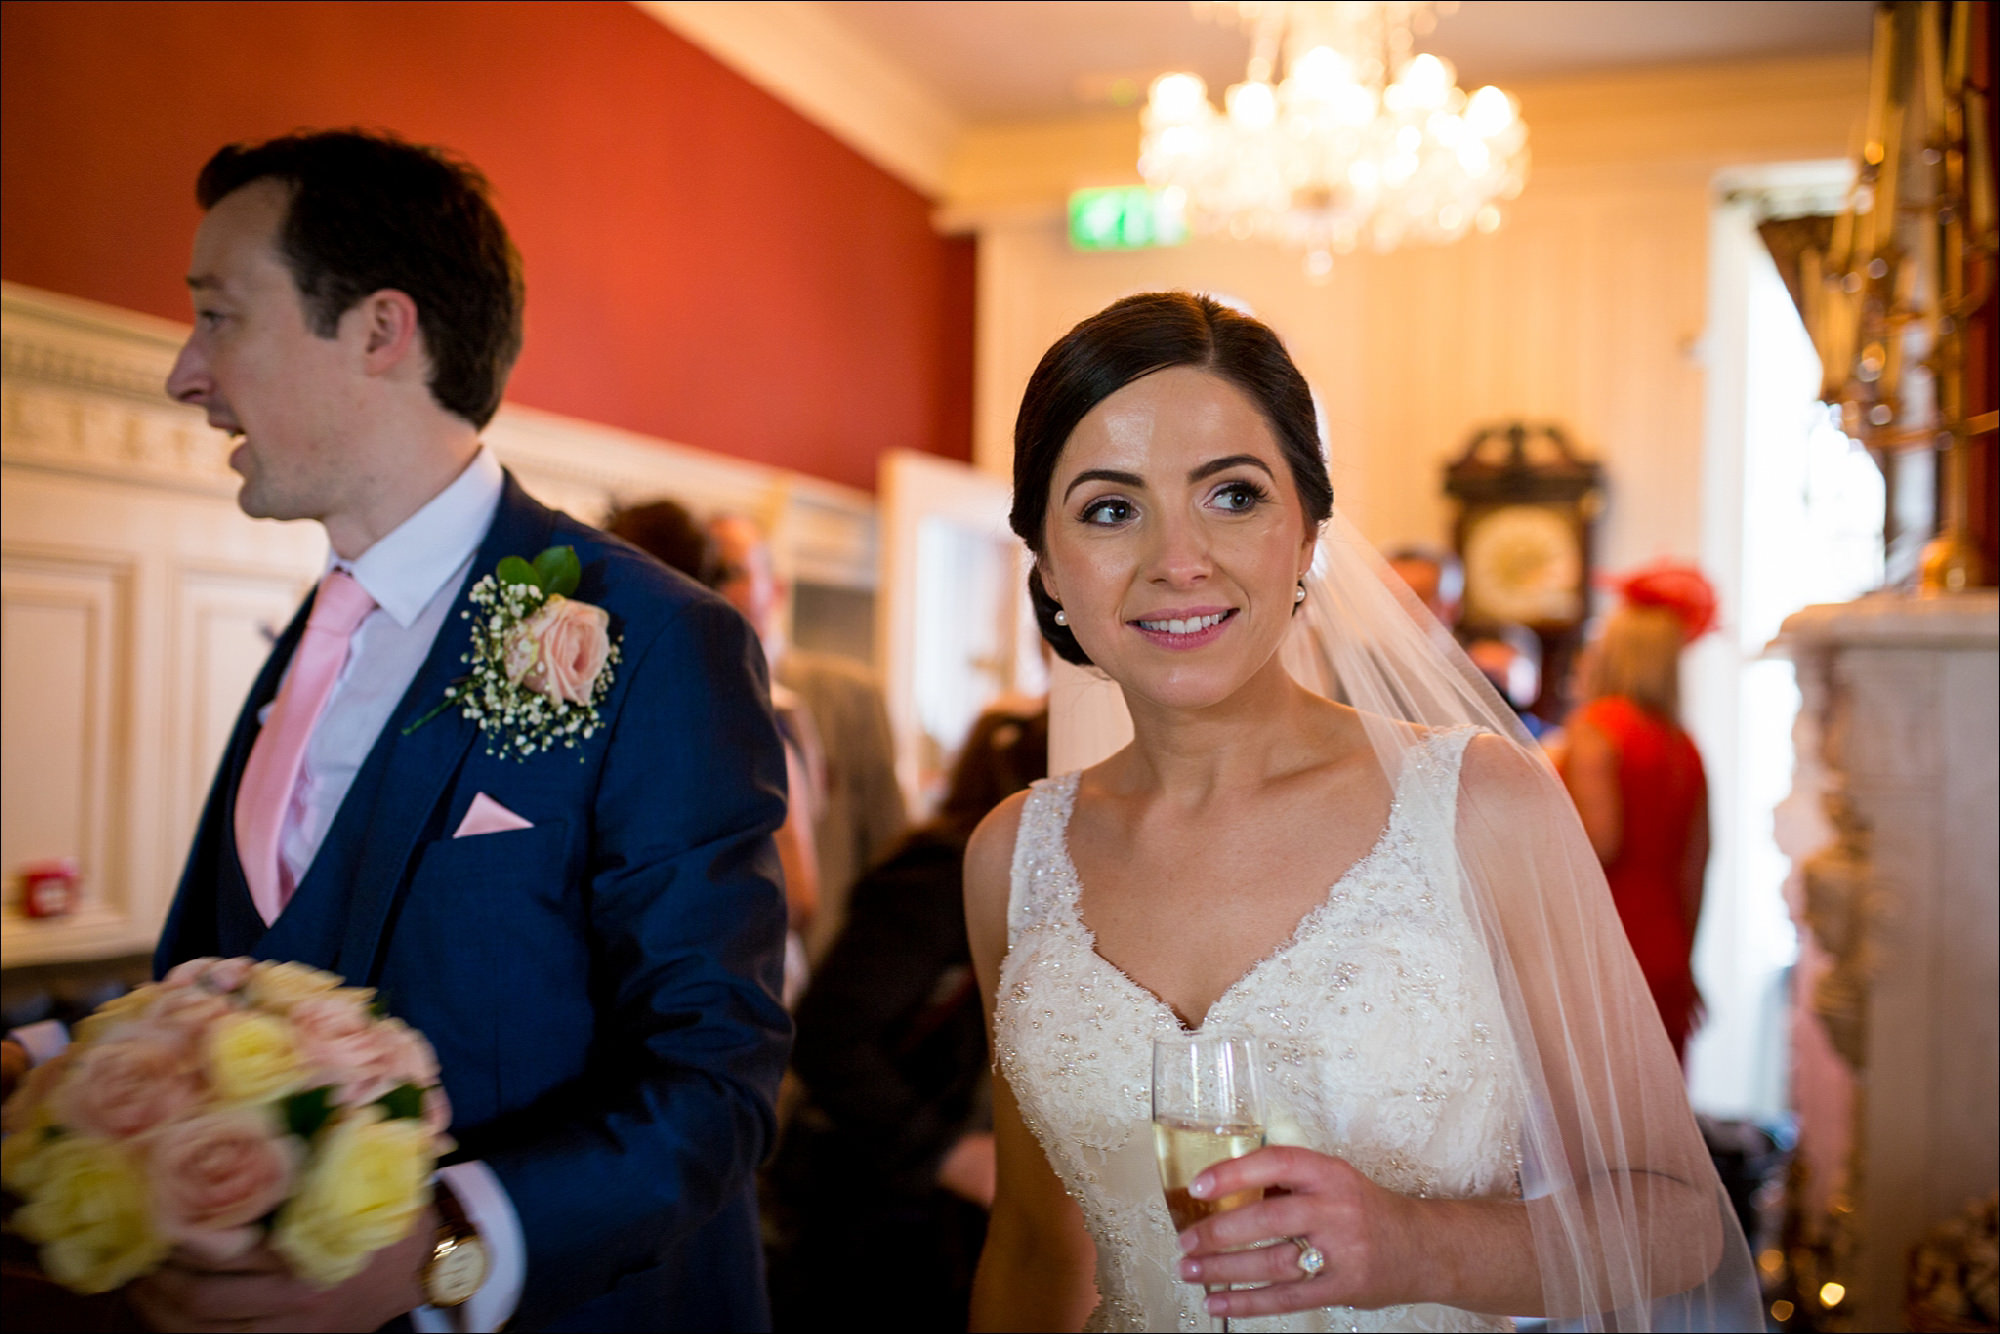 dublin wedding photographer david duignan photography bellingham castle weddings Ireland 0049